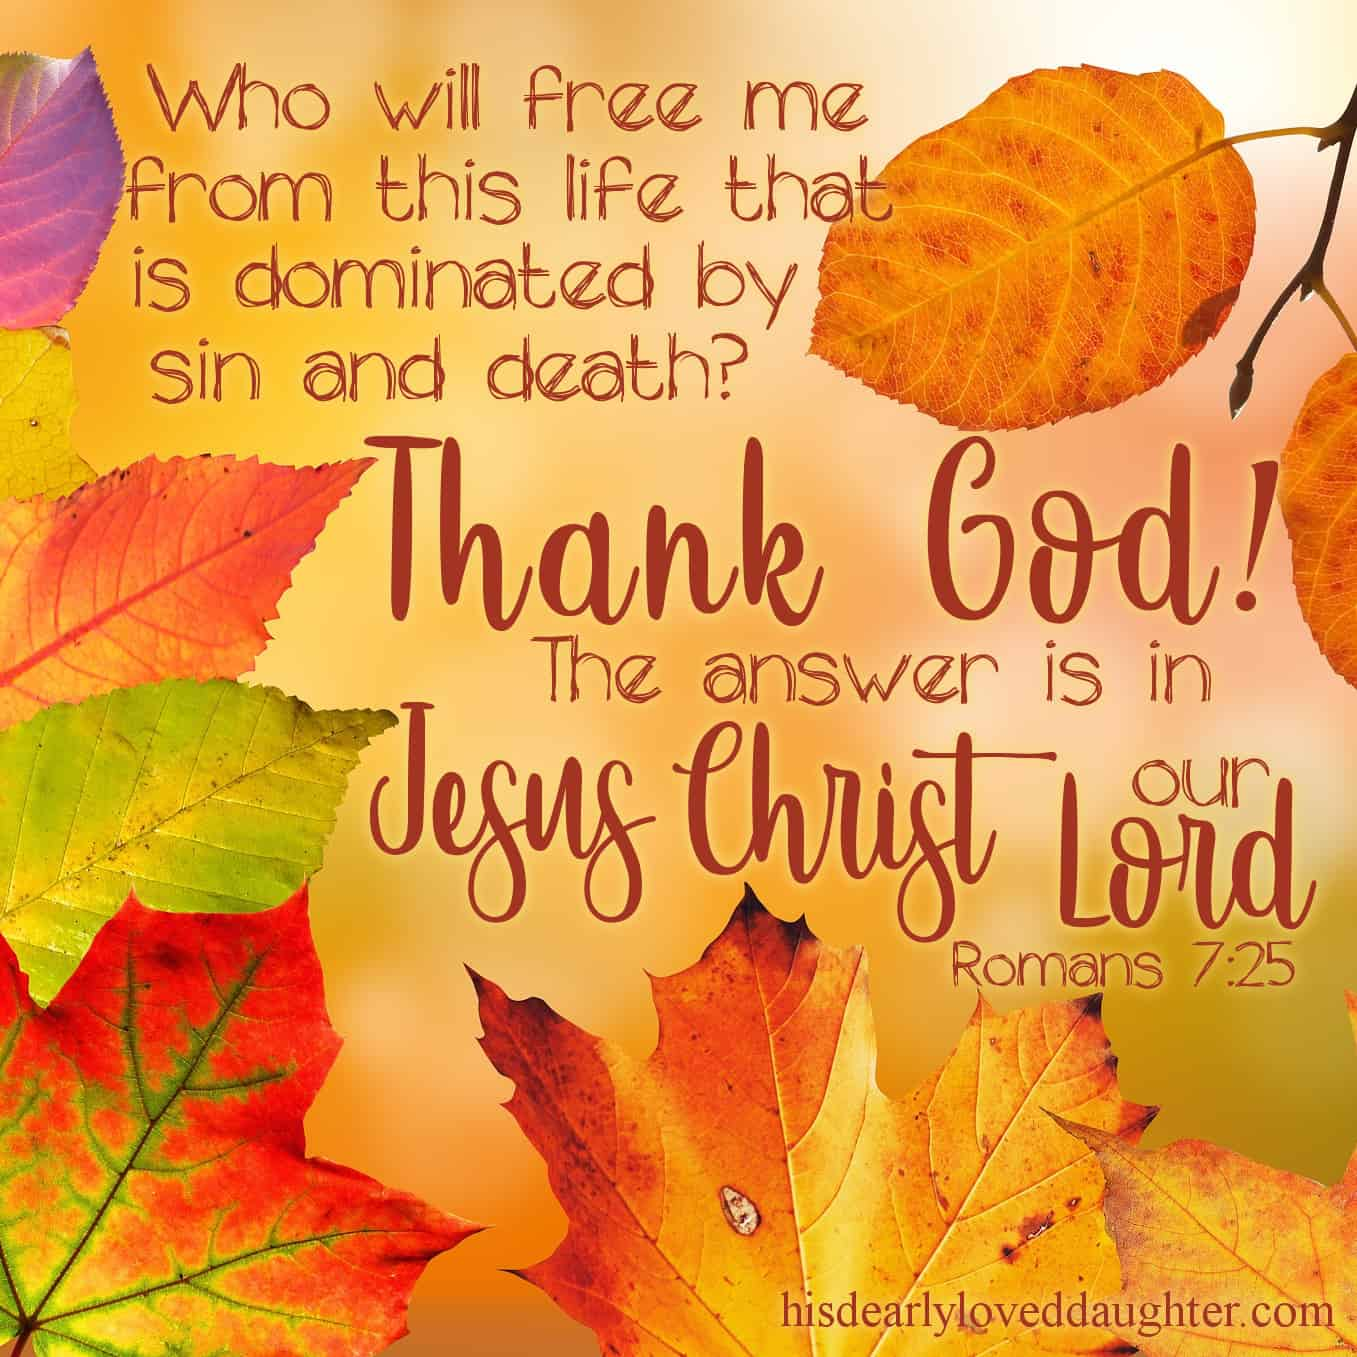 Who will free me from this life that is dominated by sin and death? Thank GOD! The answer is in Jesus Christ our Lord. Romans 7:25